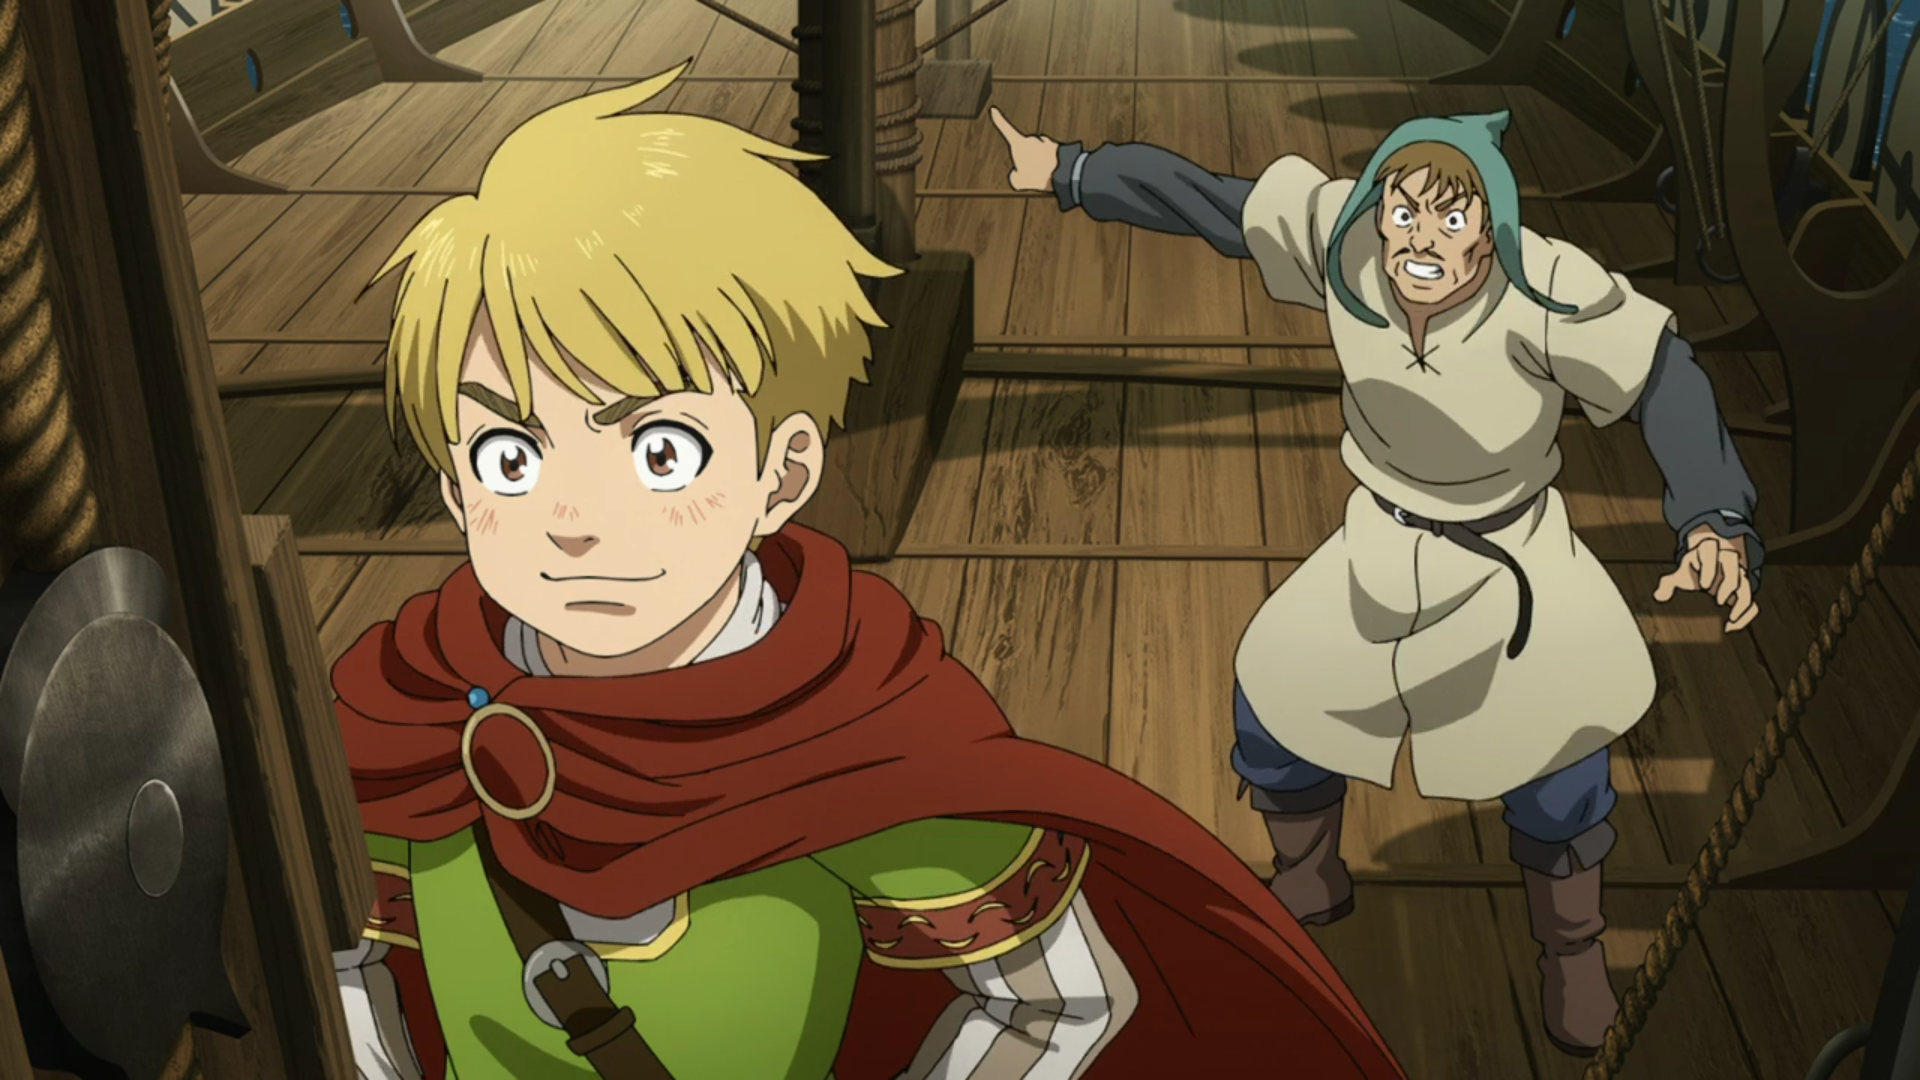 Thorfinn posing heroically on a boat while an adult man gestures frantically behind him